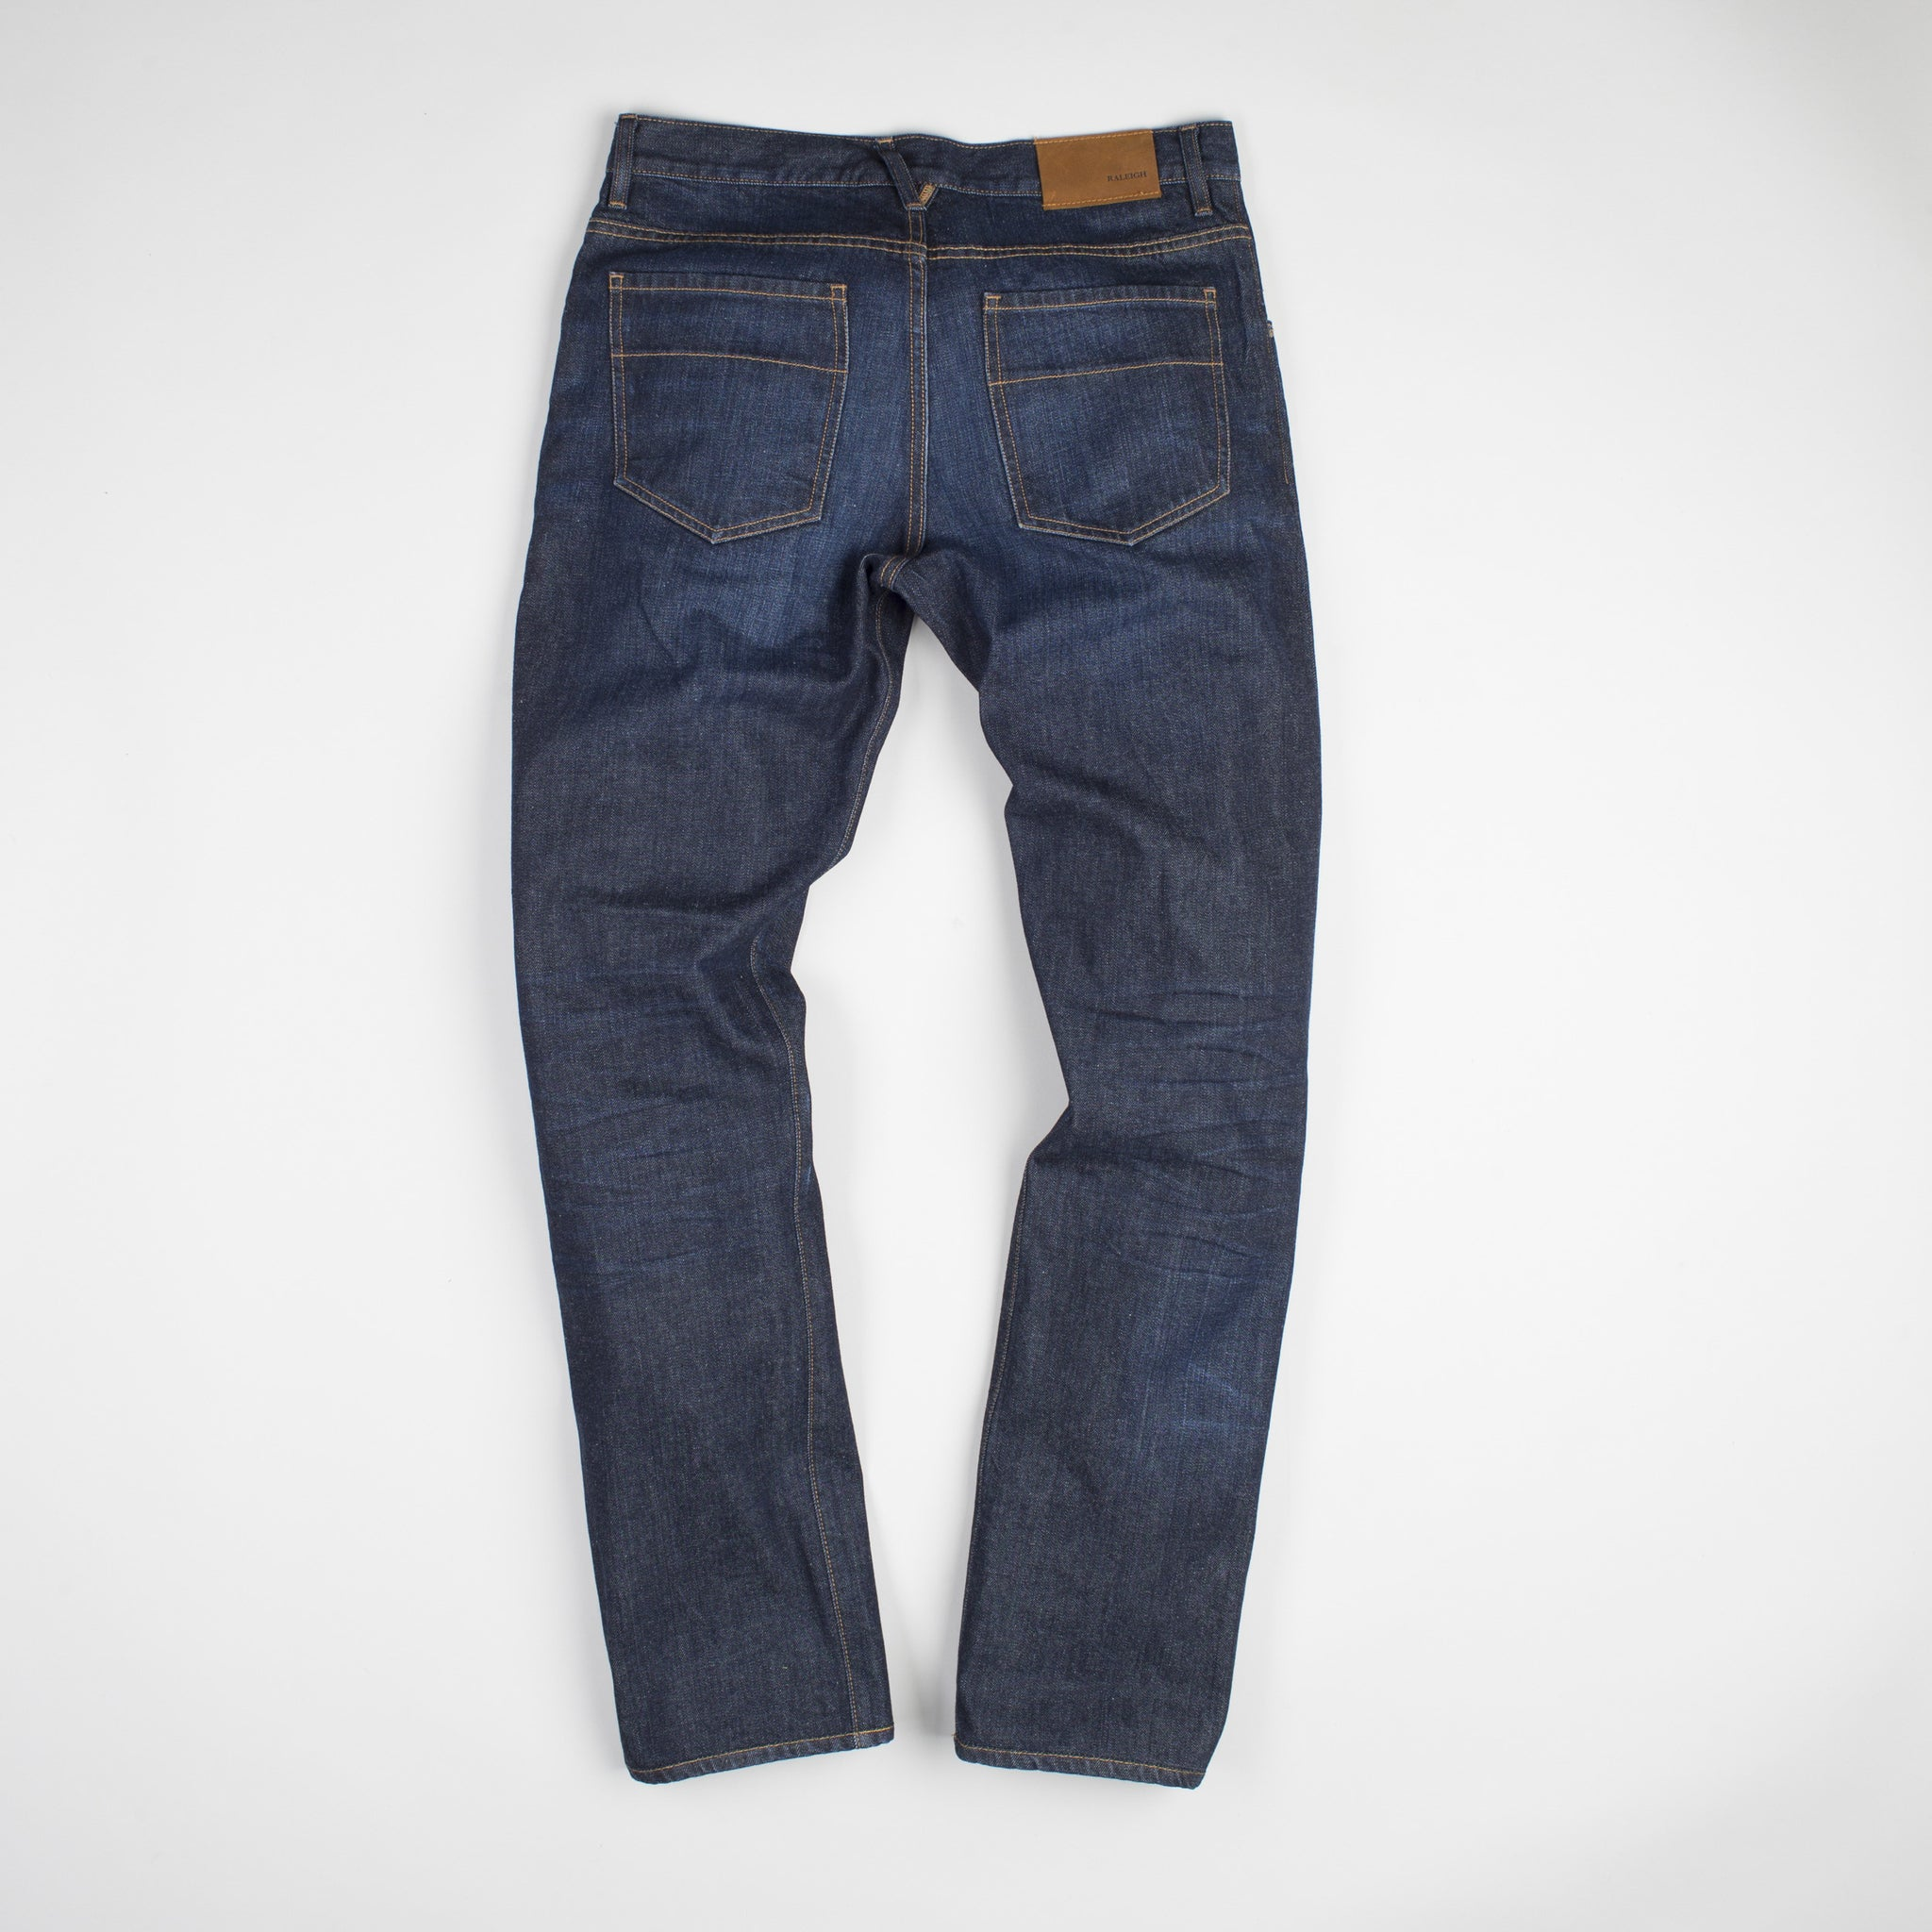 angle: general  Raleigh Denim Workshop Jones thin fit in a general wash, back view